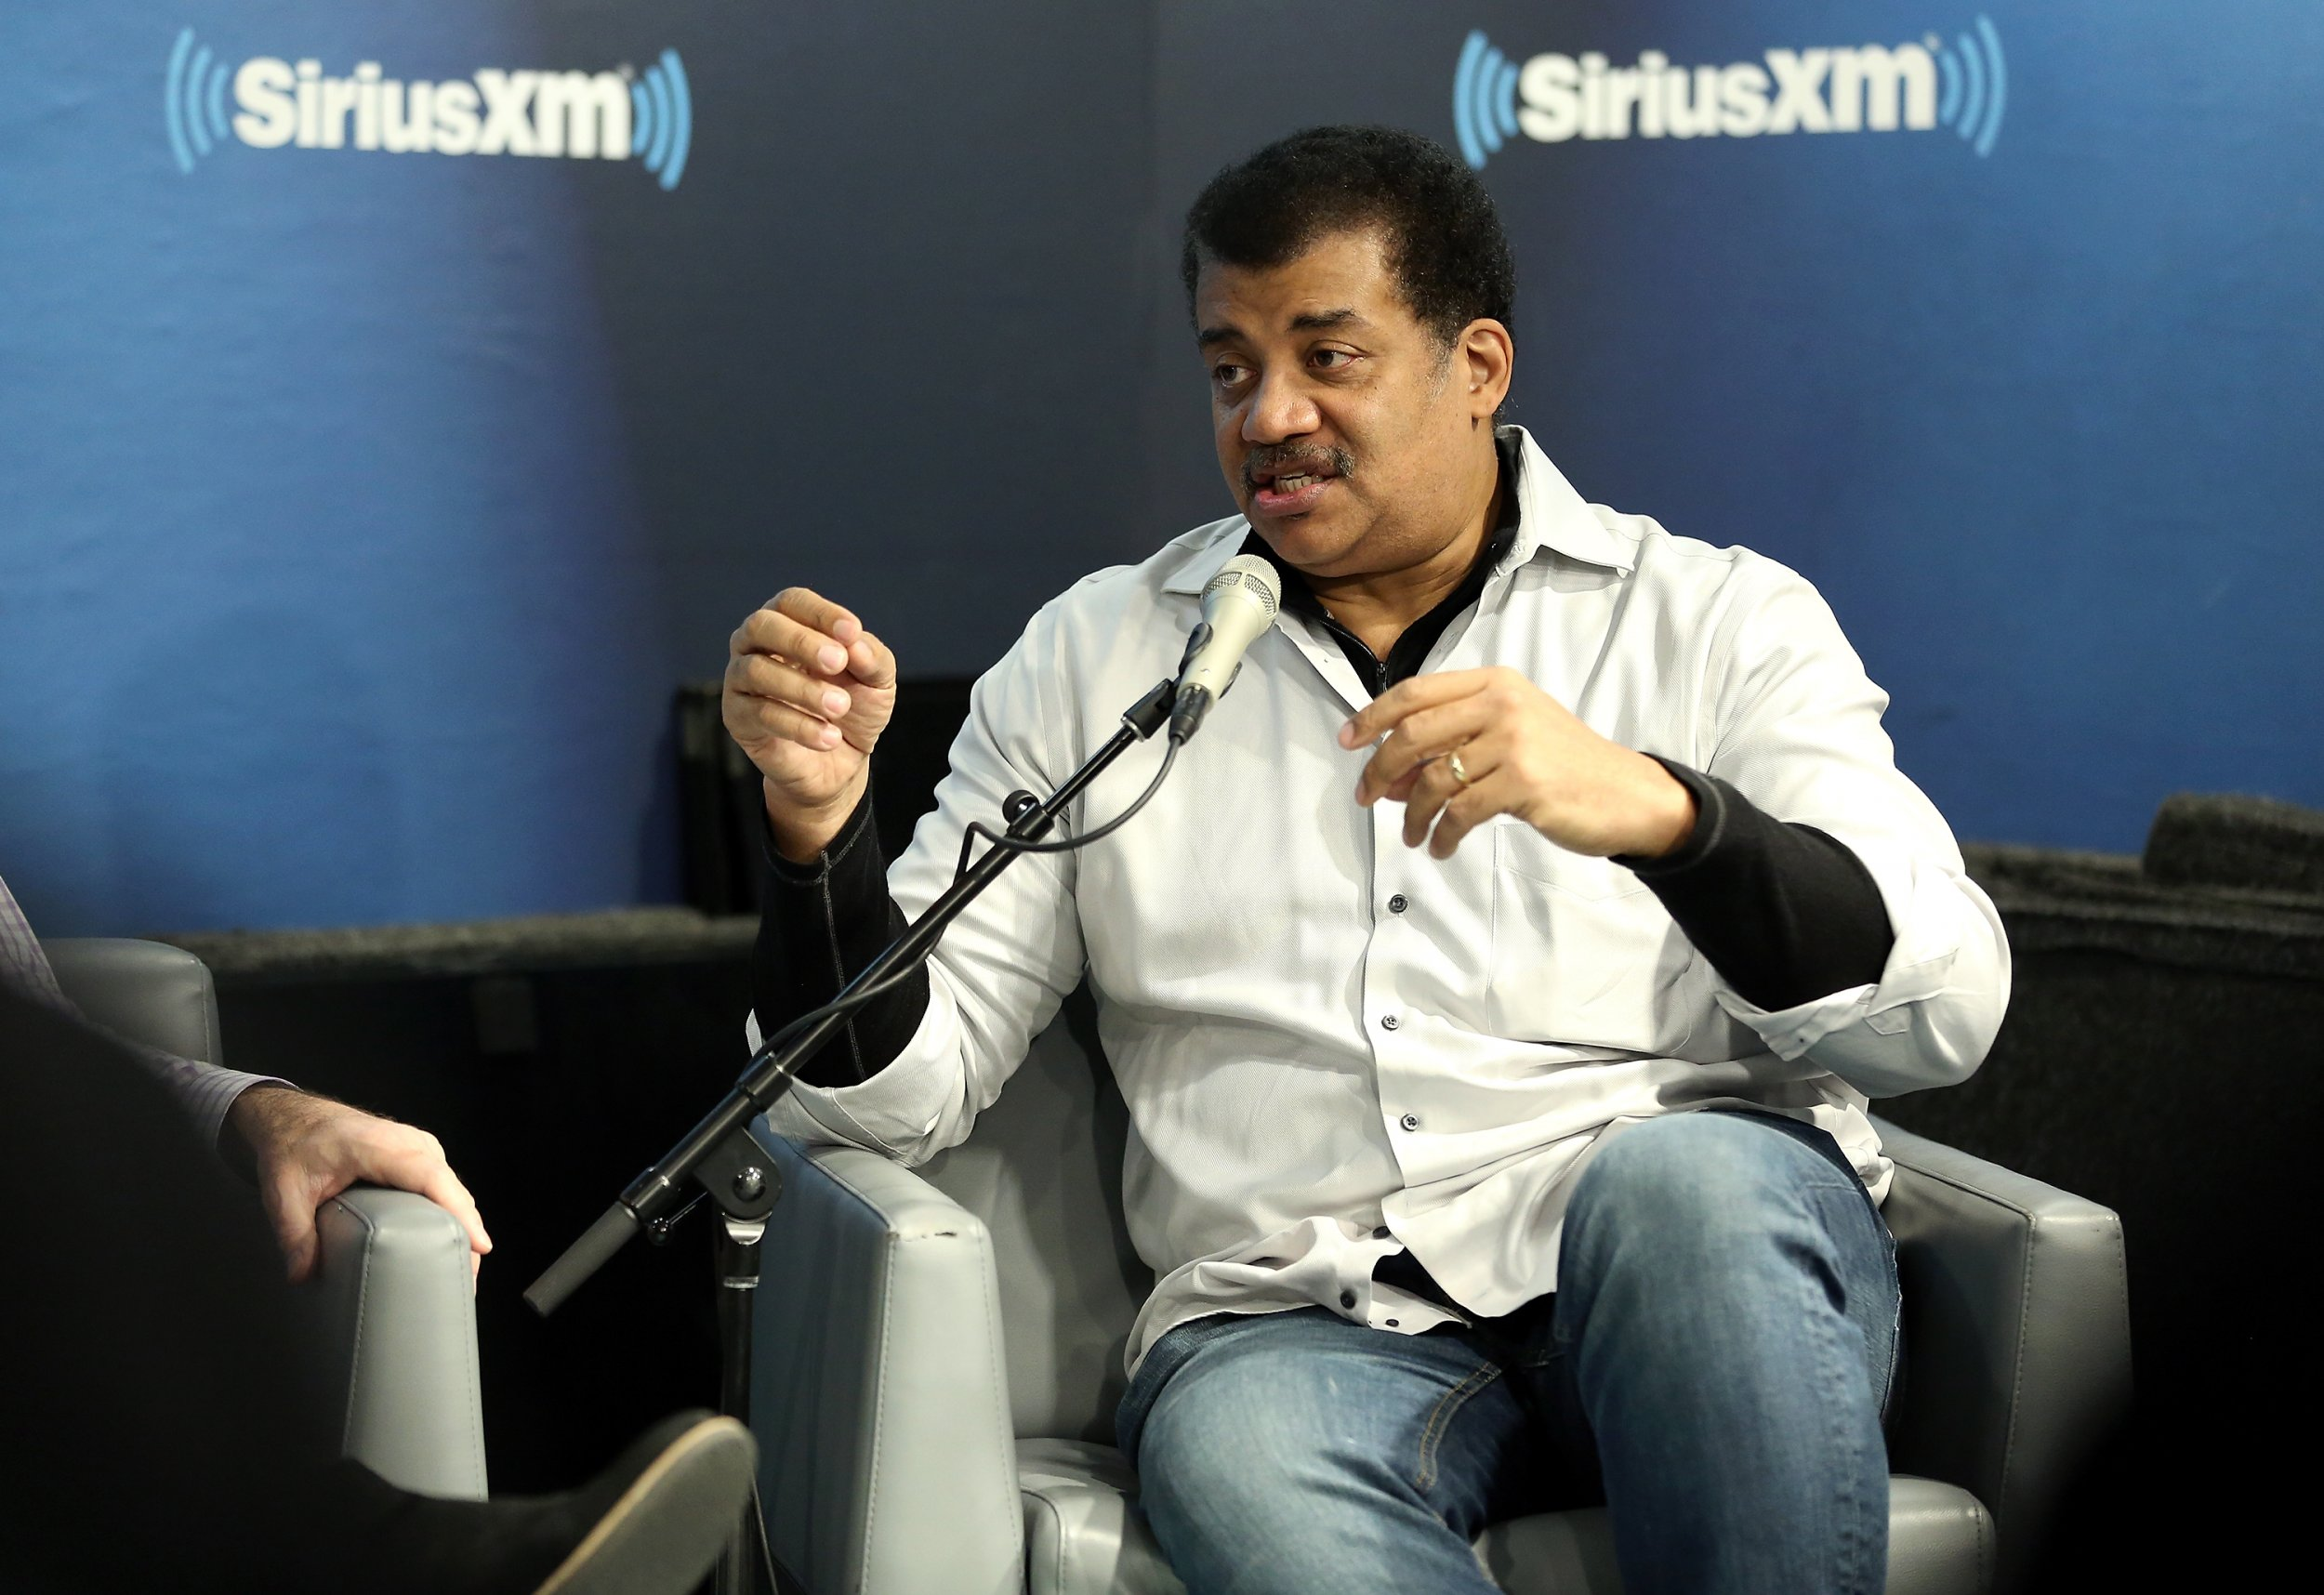 neil degrasse tyson explains why earth is not flat again says